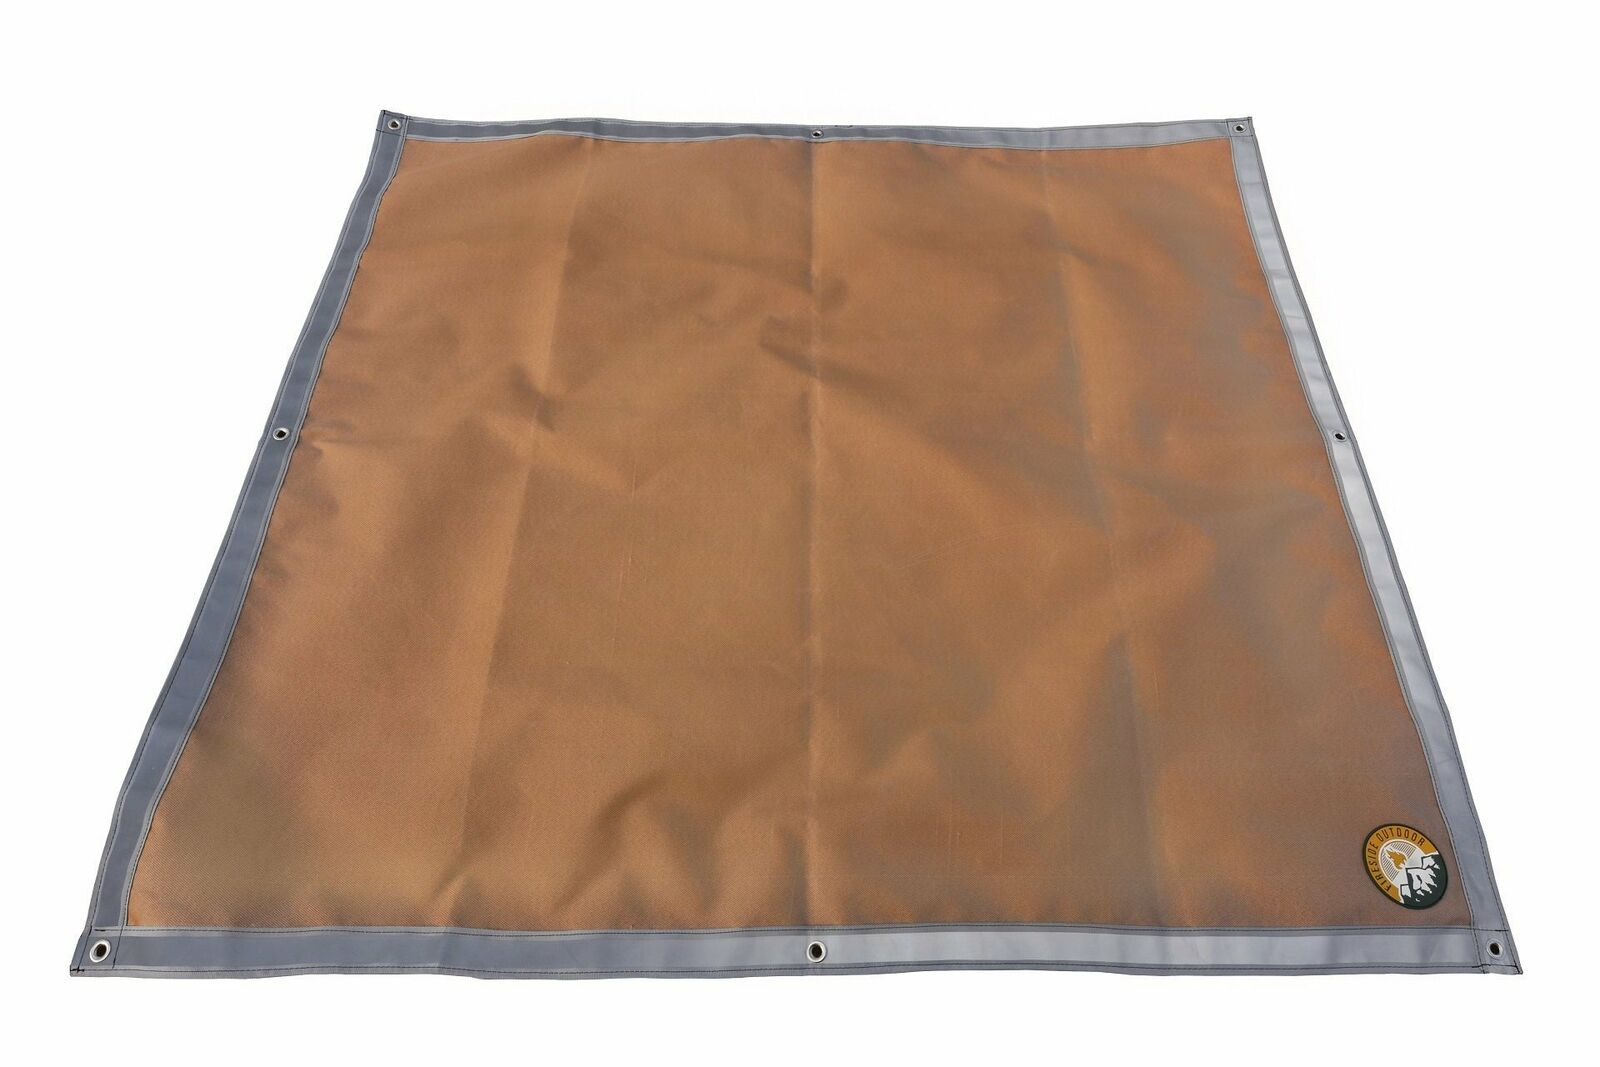 Image of: Koolpad Fire Pit Pad Grill Mat Protect Your Deck Patio Or Lawn From Damage For Sale Online Ebay